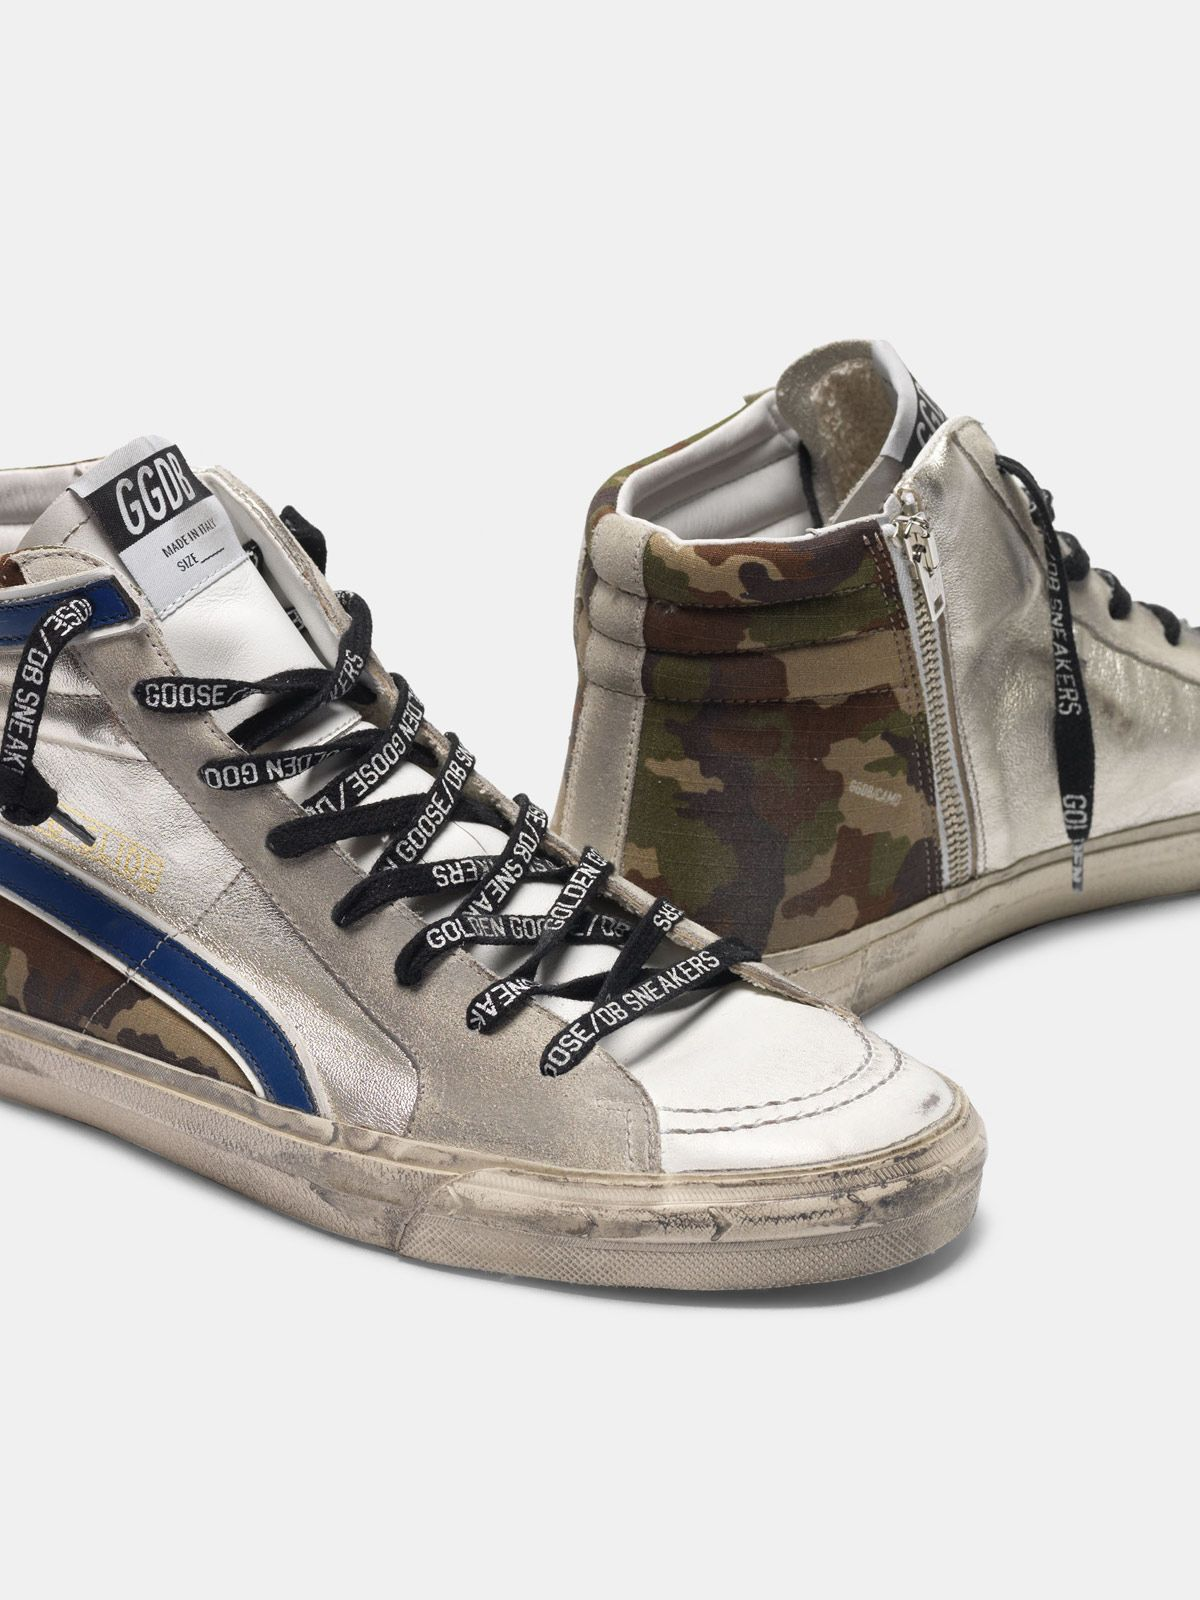 Golden Goose - Sneakers Slide argentate e camouflage in